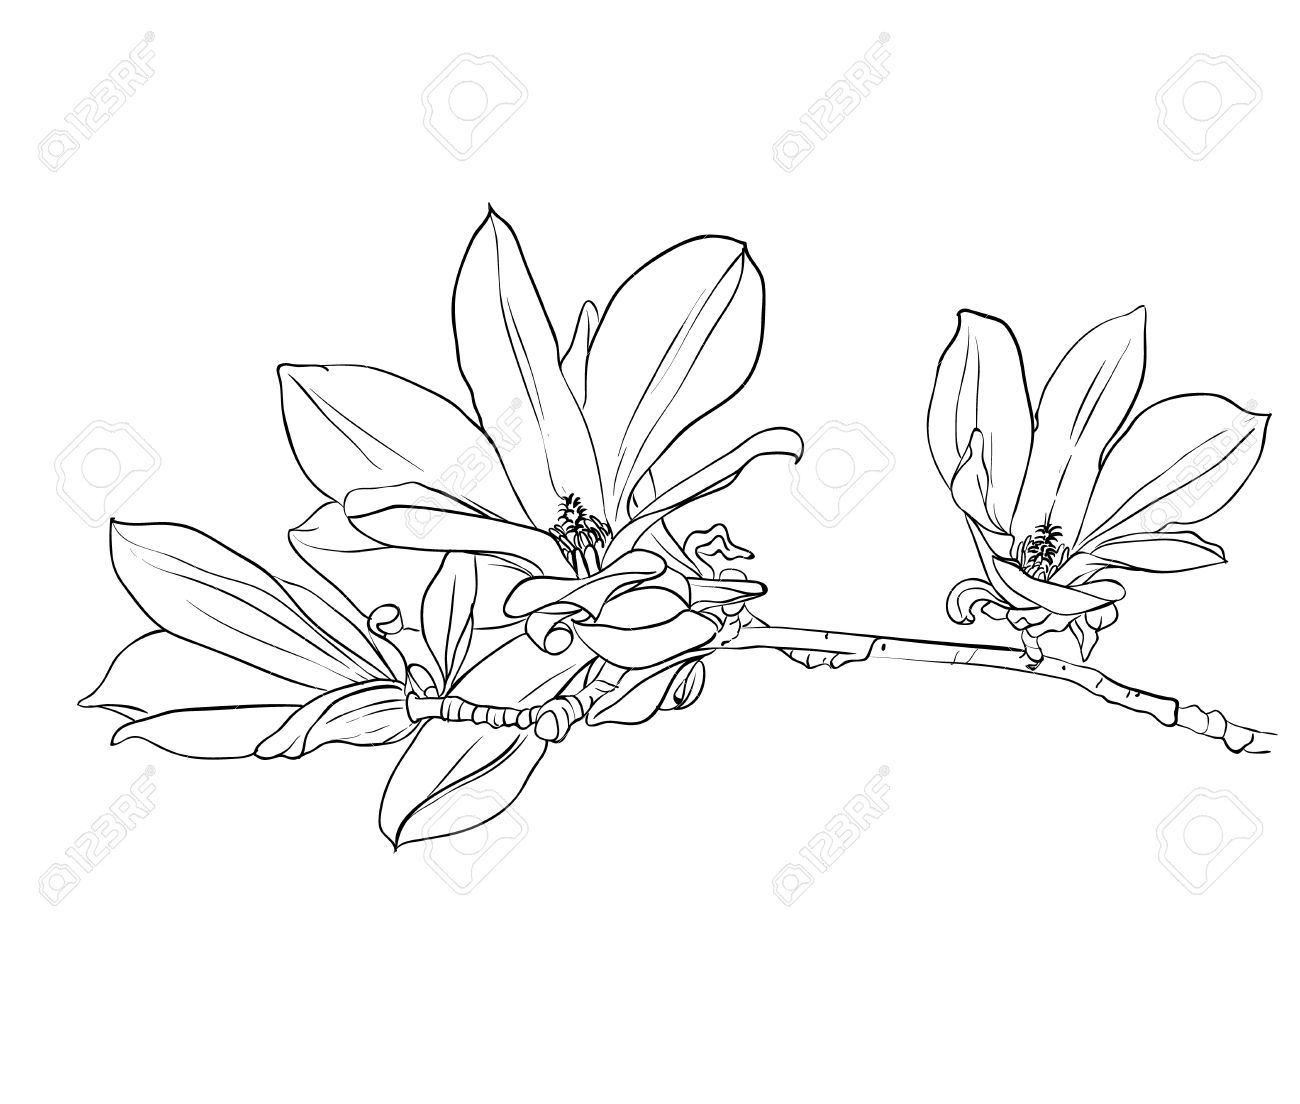 1300x1104 Hand Drawn Magnolia Flowers. Hand Drawn Realistic Sketch. Royalty